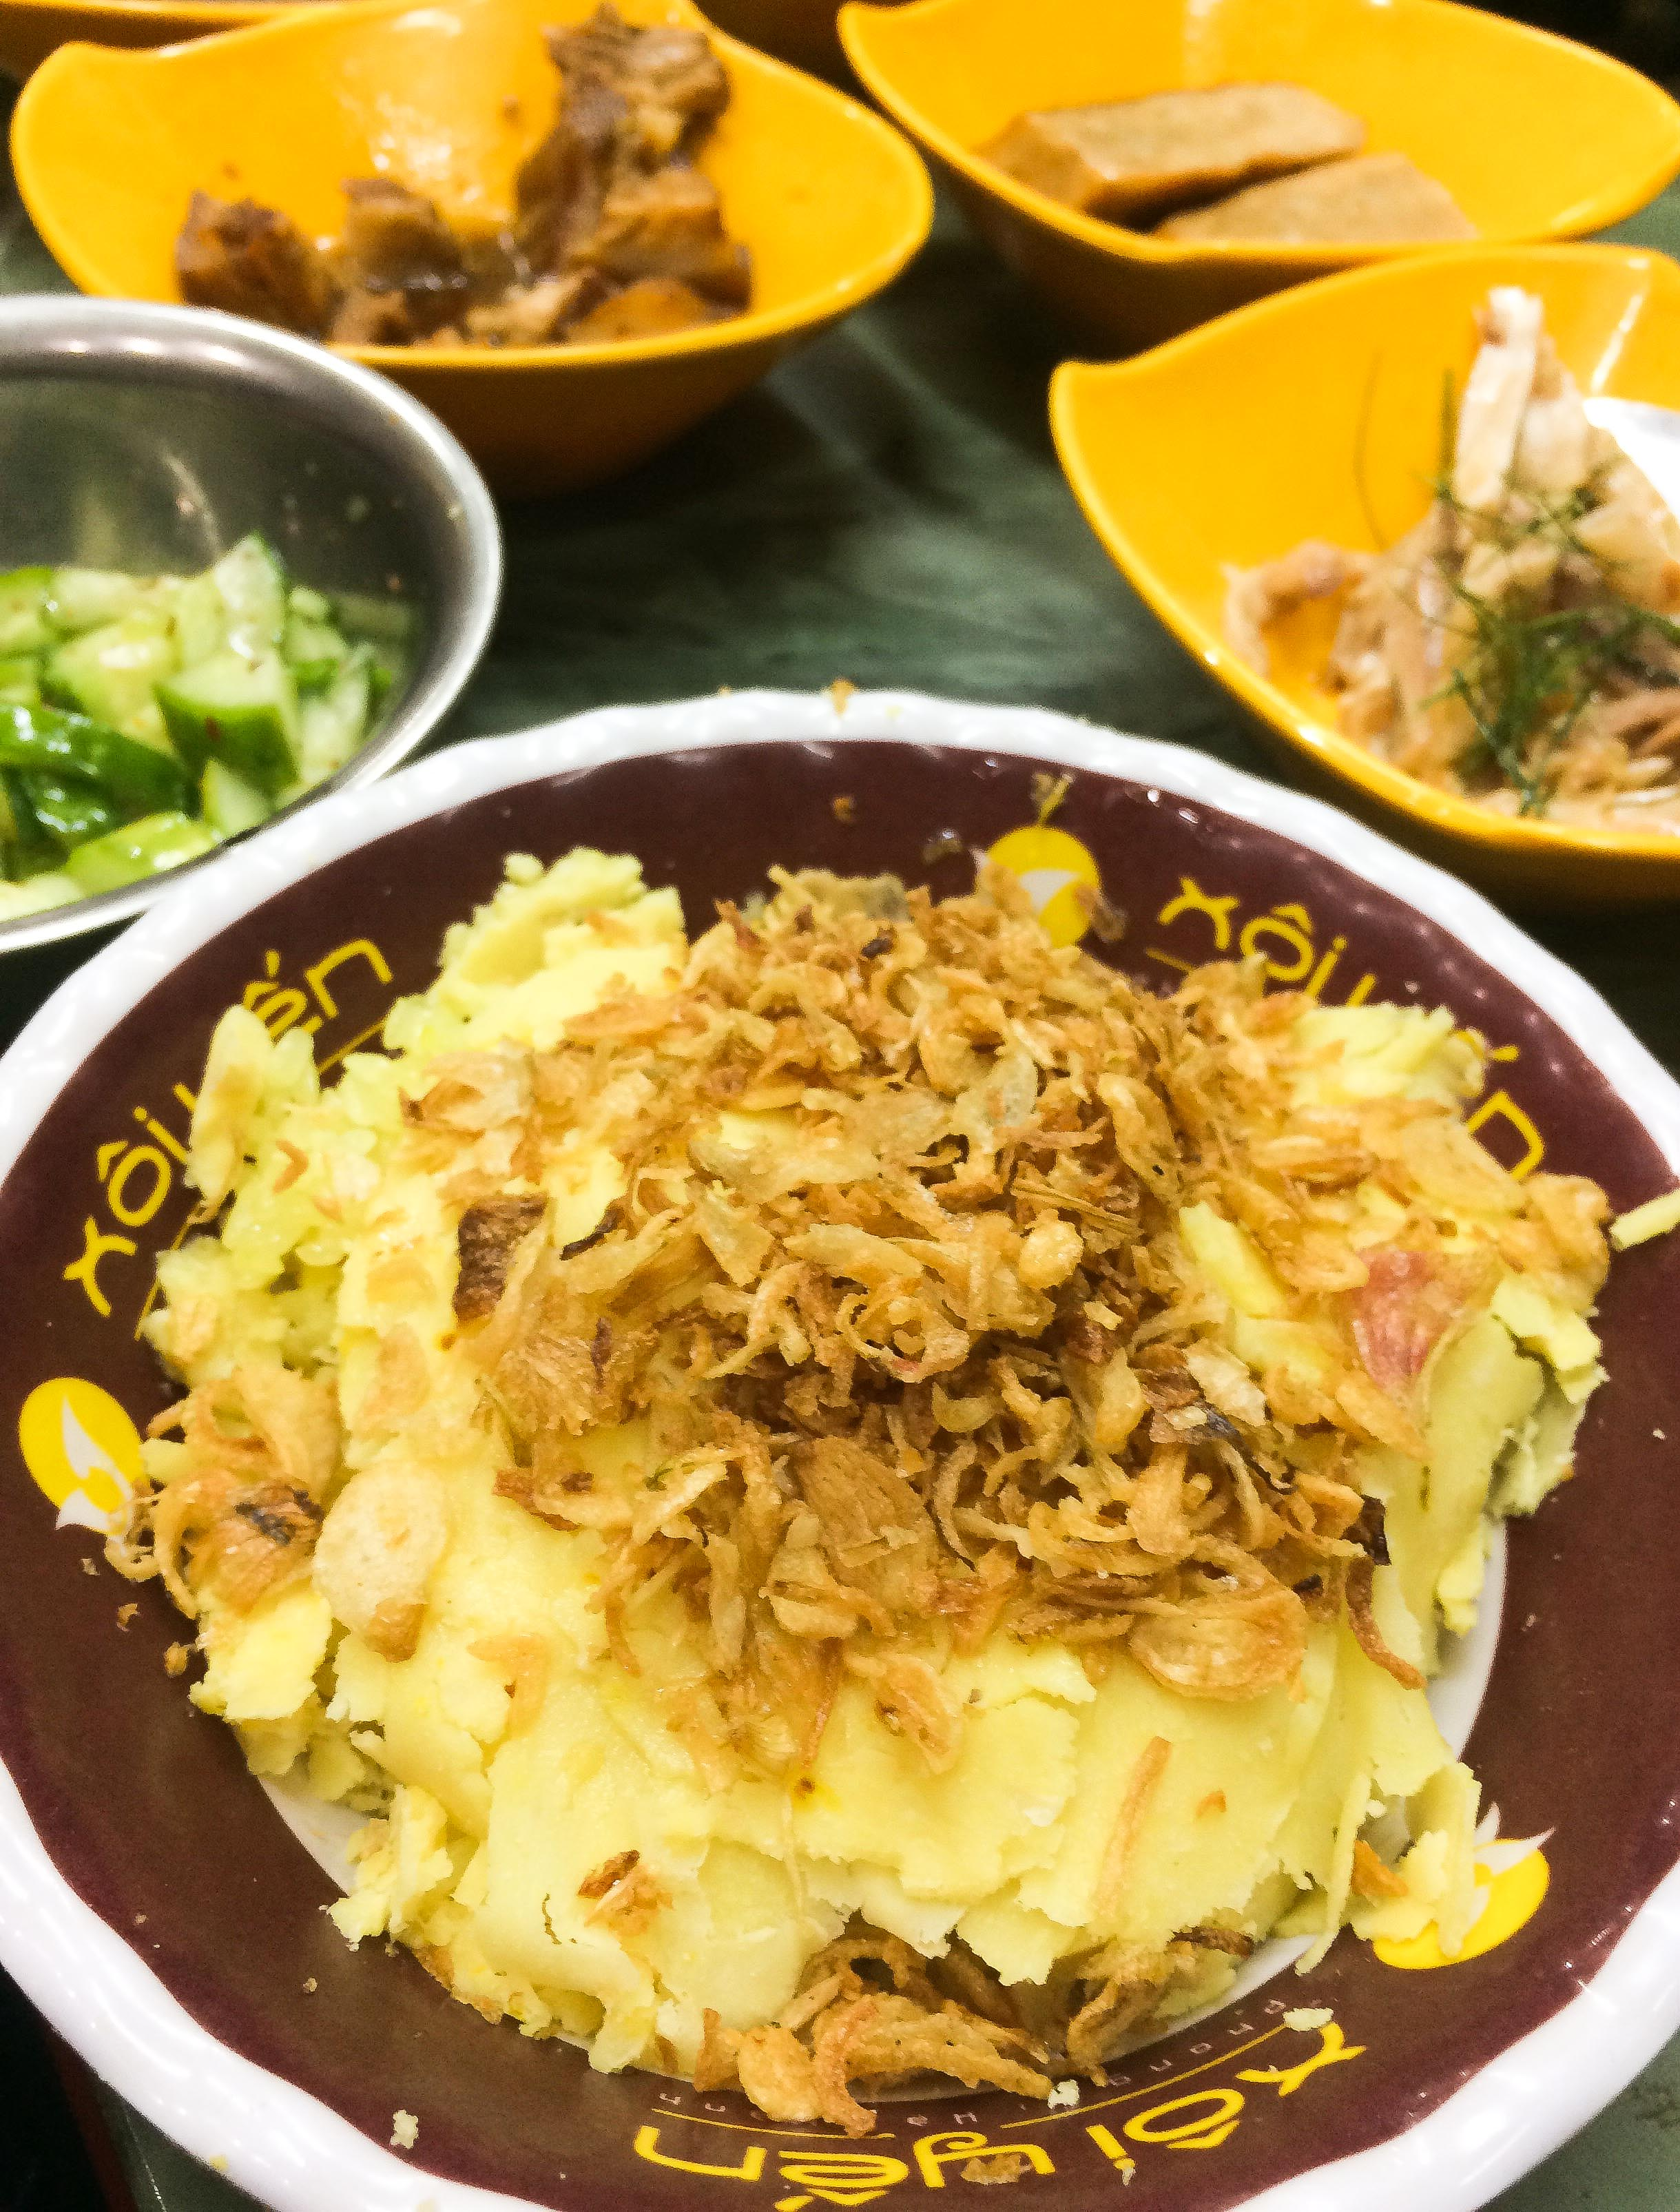 xôi thap cam is a bowl of sticky rice, covered with shaved mung beans, fried onions, and chicken fat drizzled over top